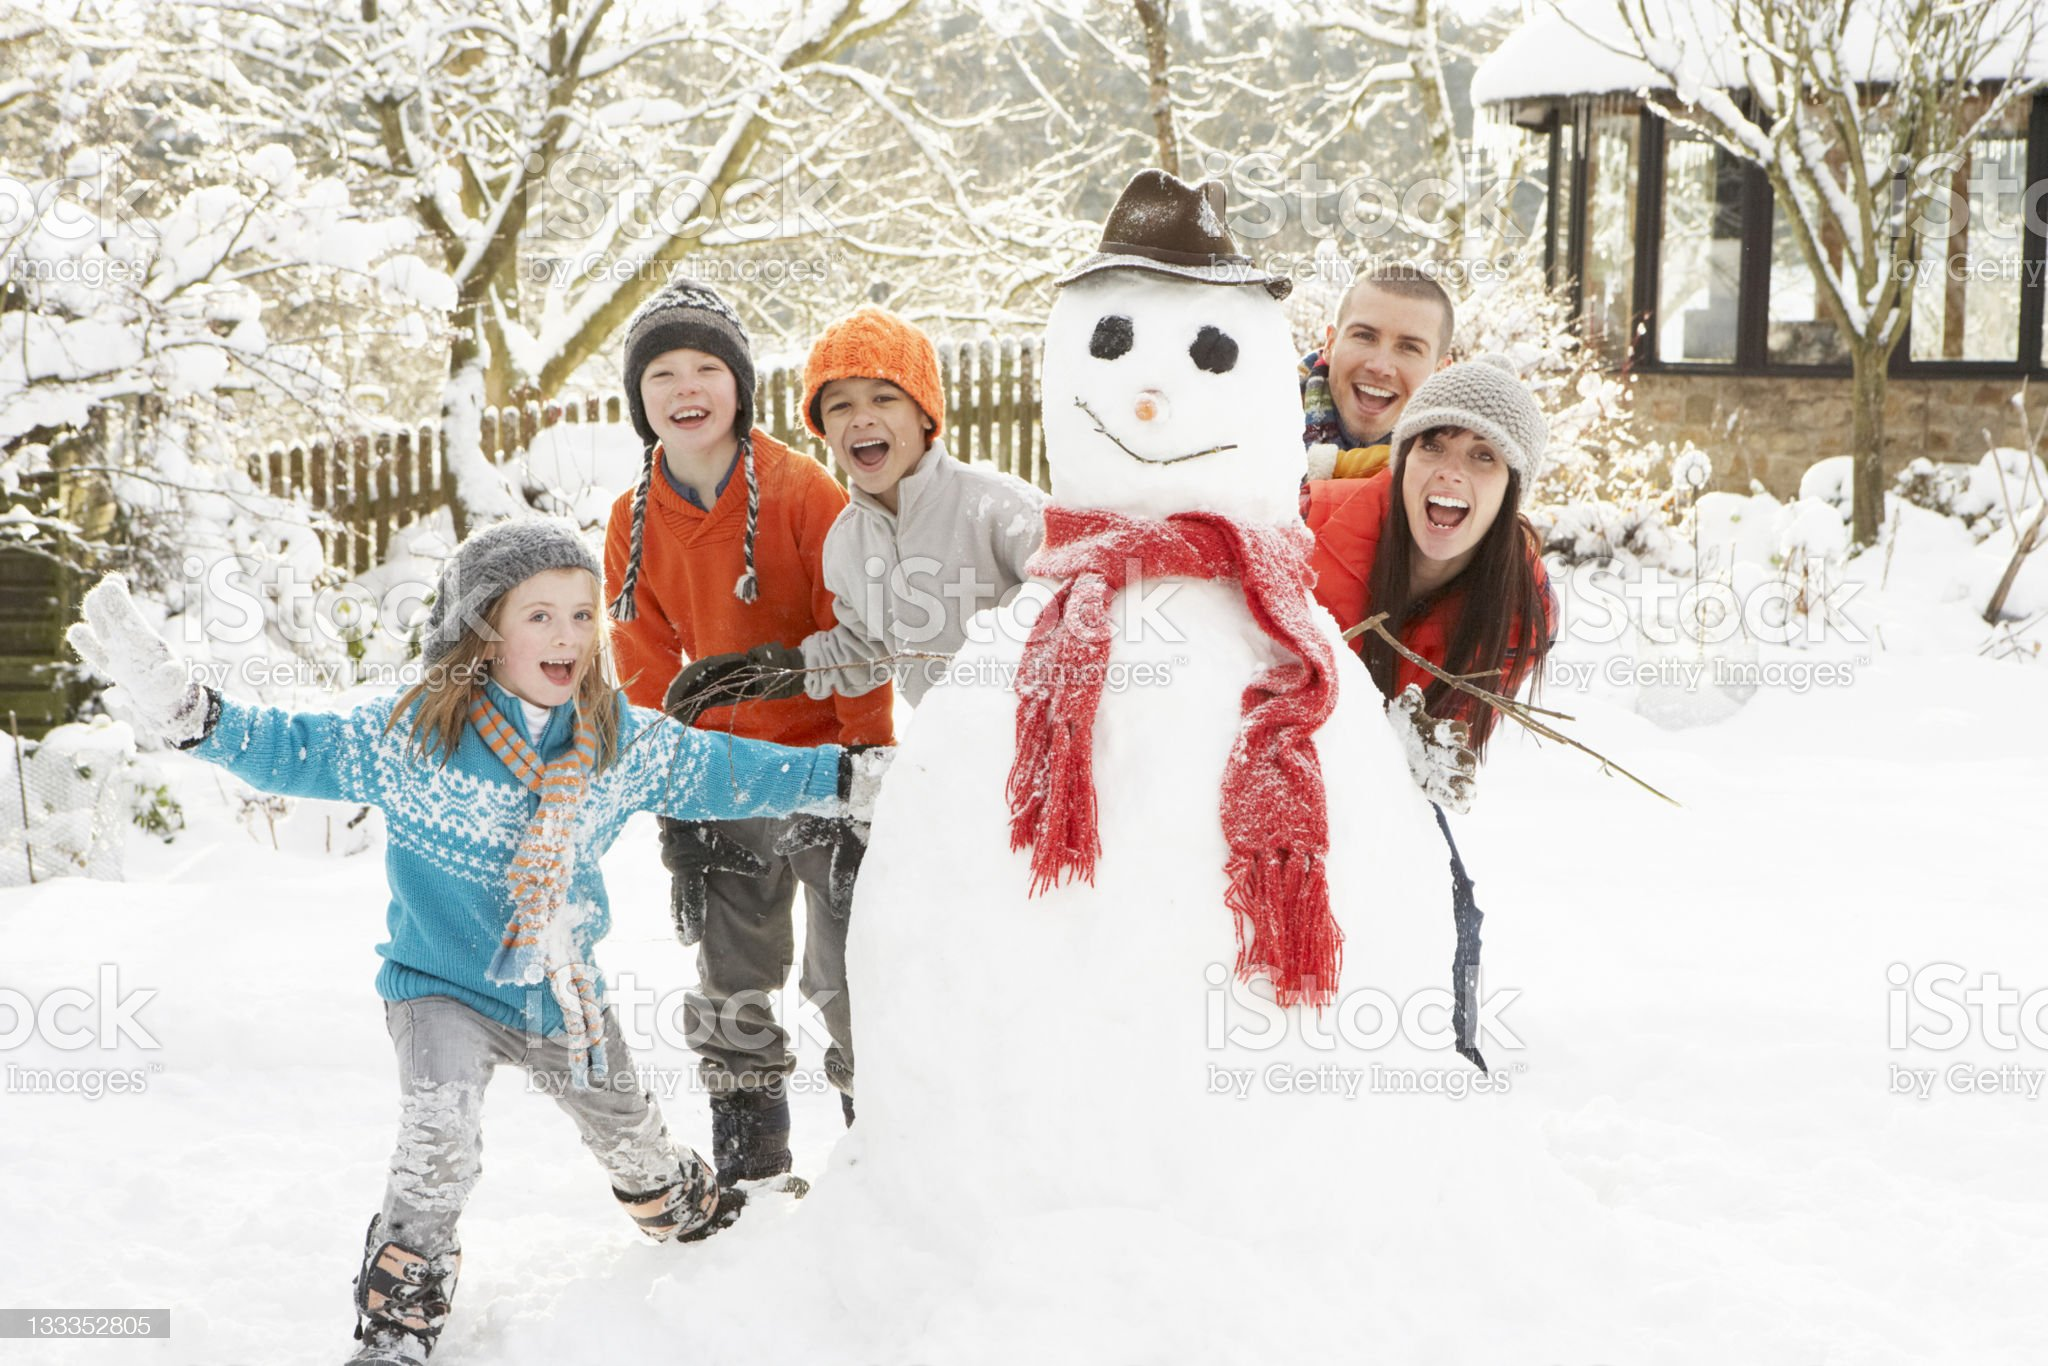 A family with two children building a snowman royalty-free stock photo